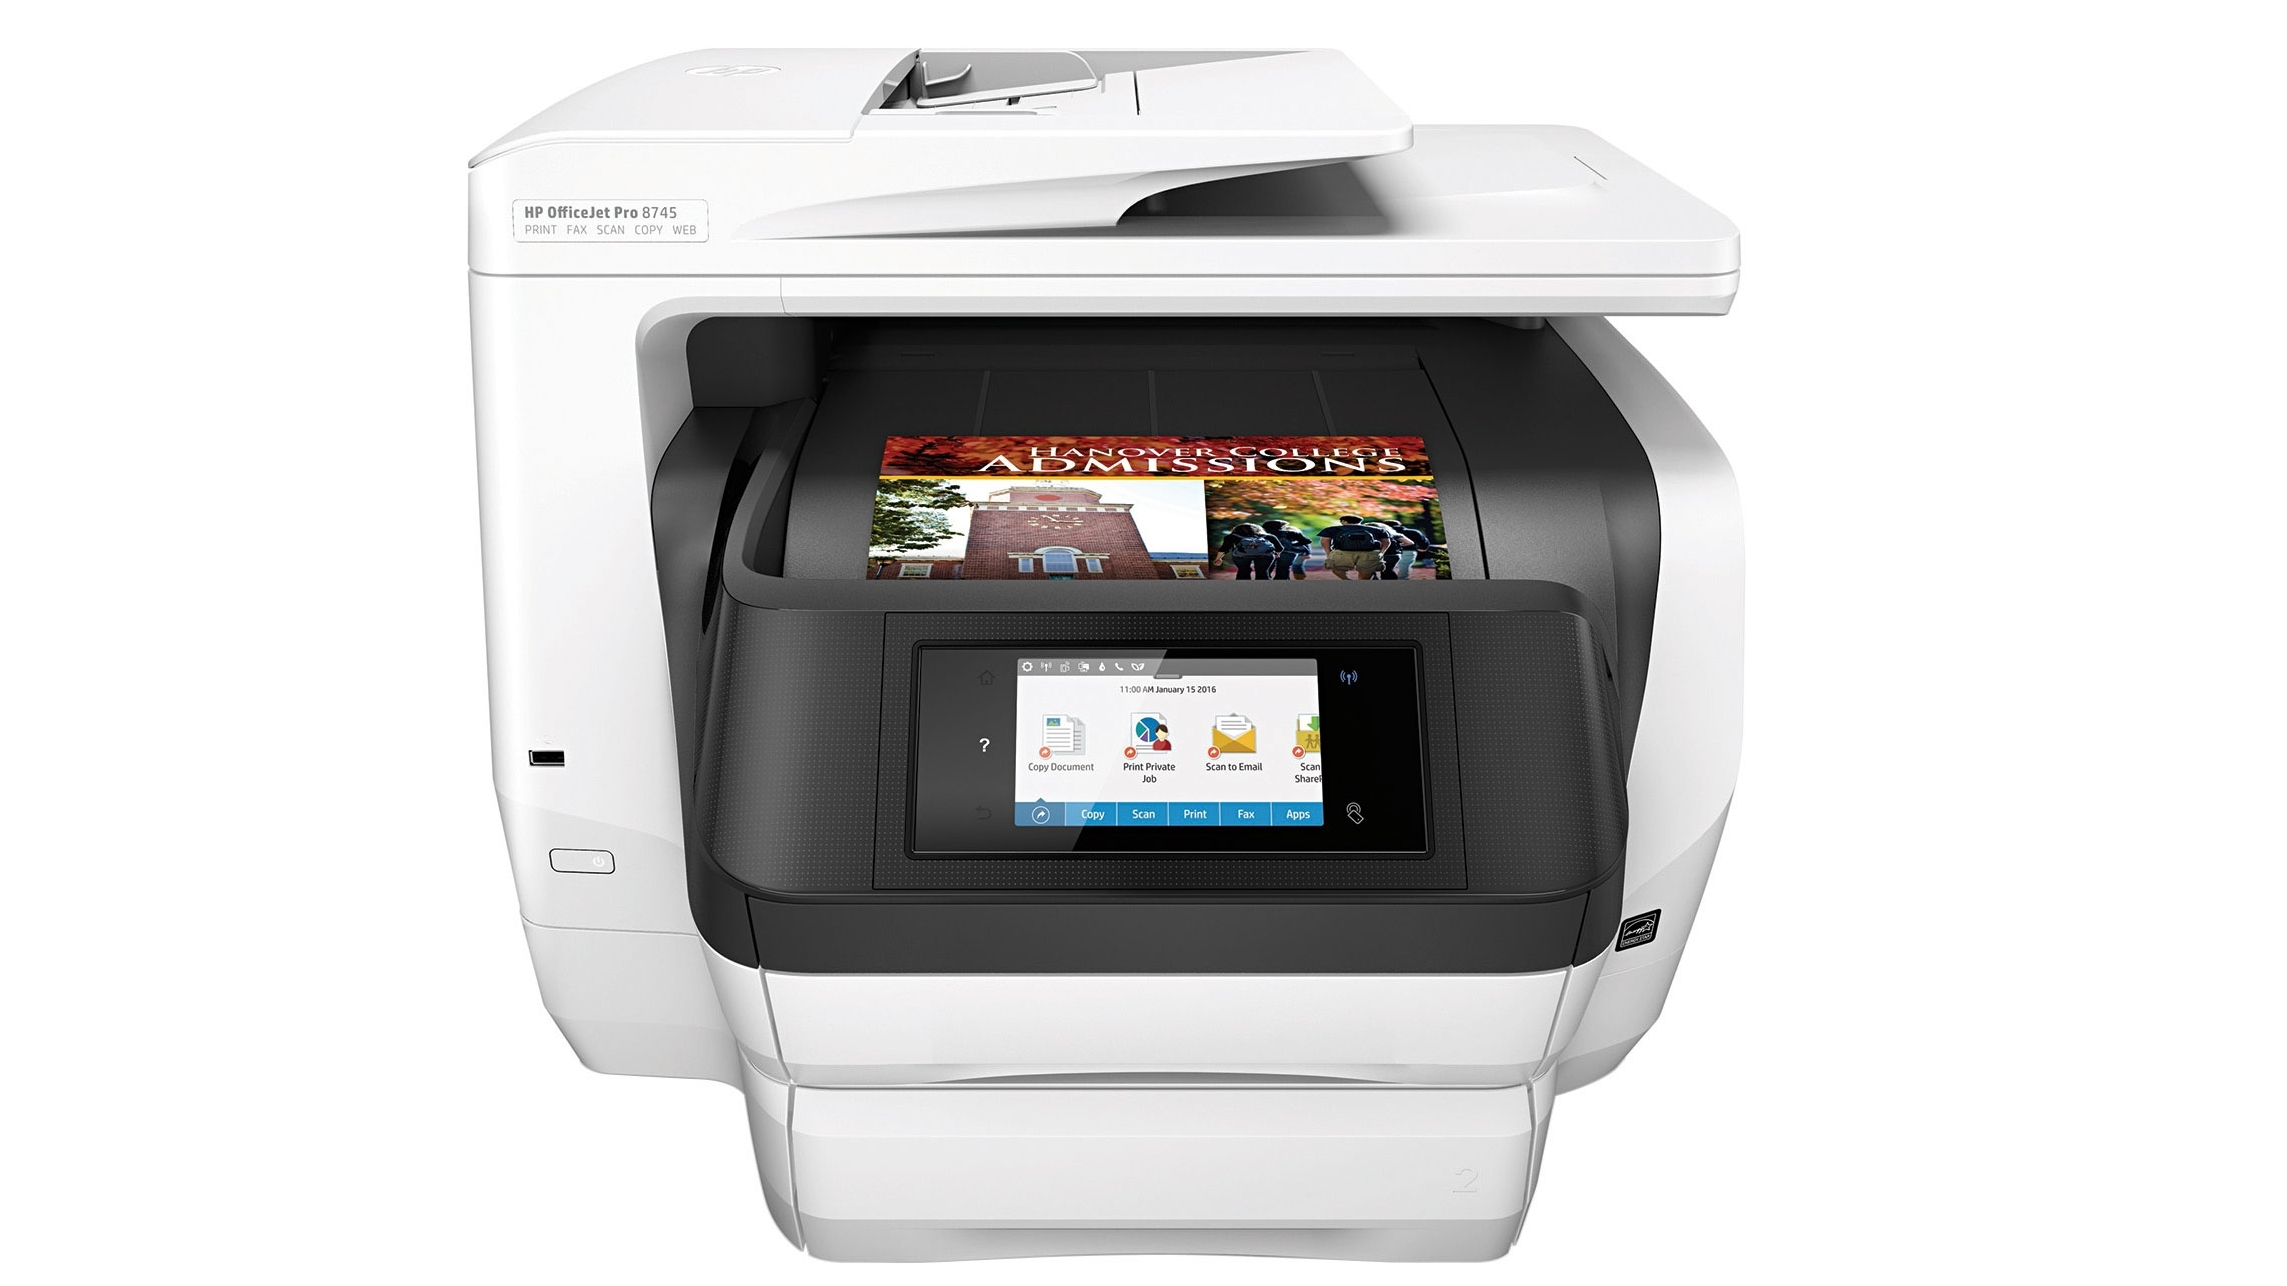 HP OfficeJet Pro 8745 All-In-One Printer